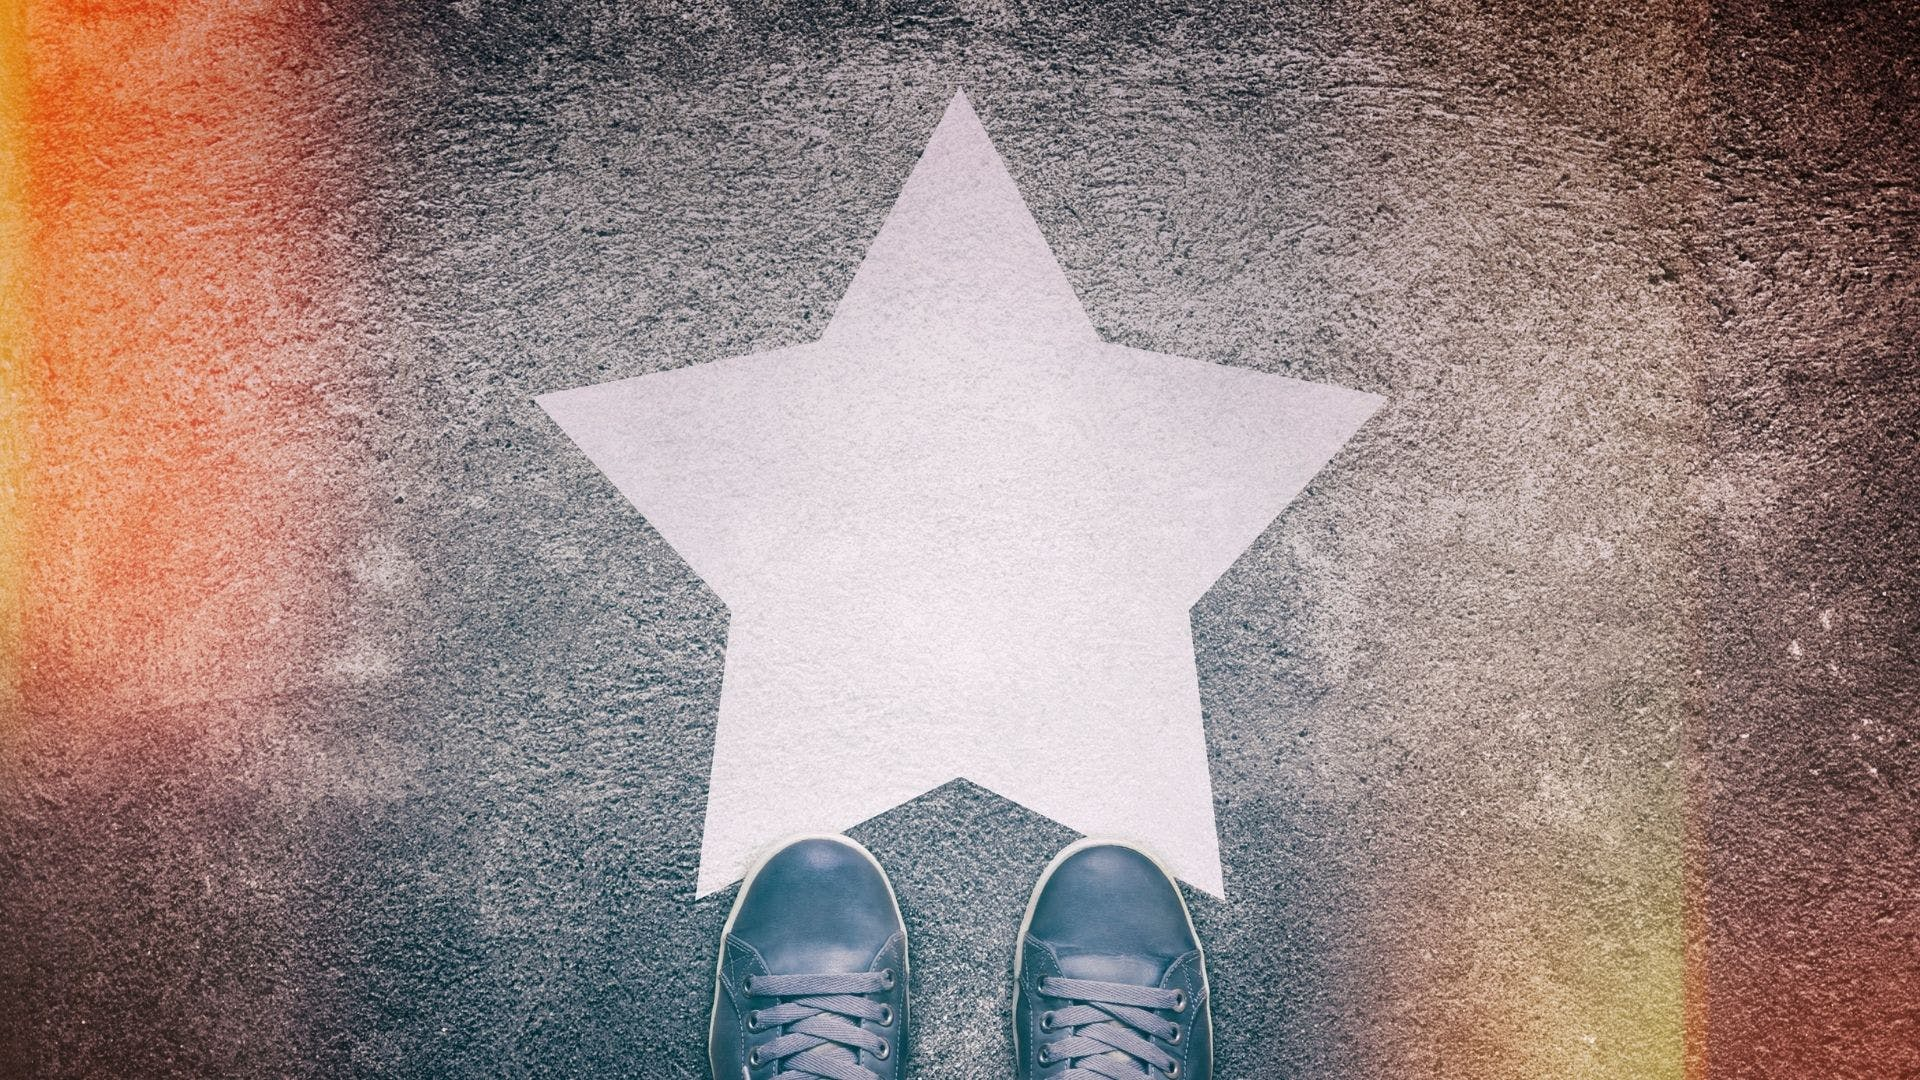 A pair of shoes standing near a star painted on the ground